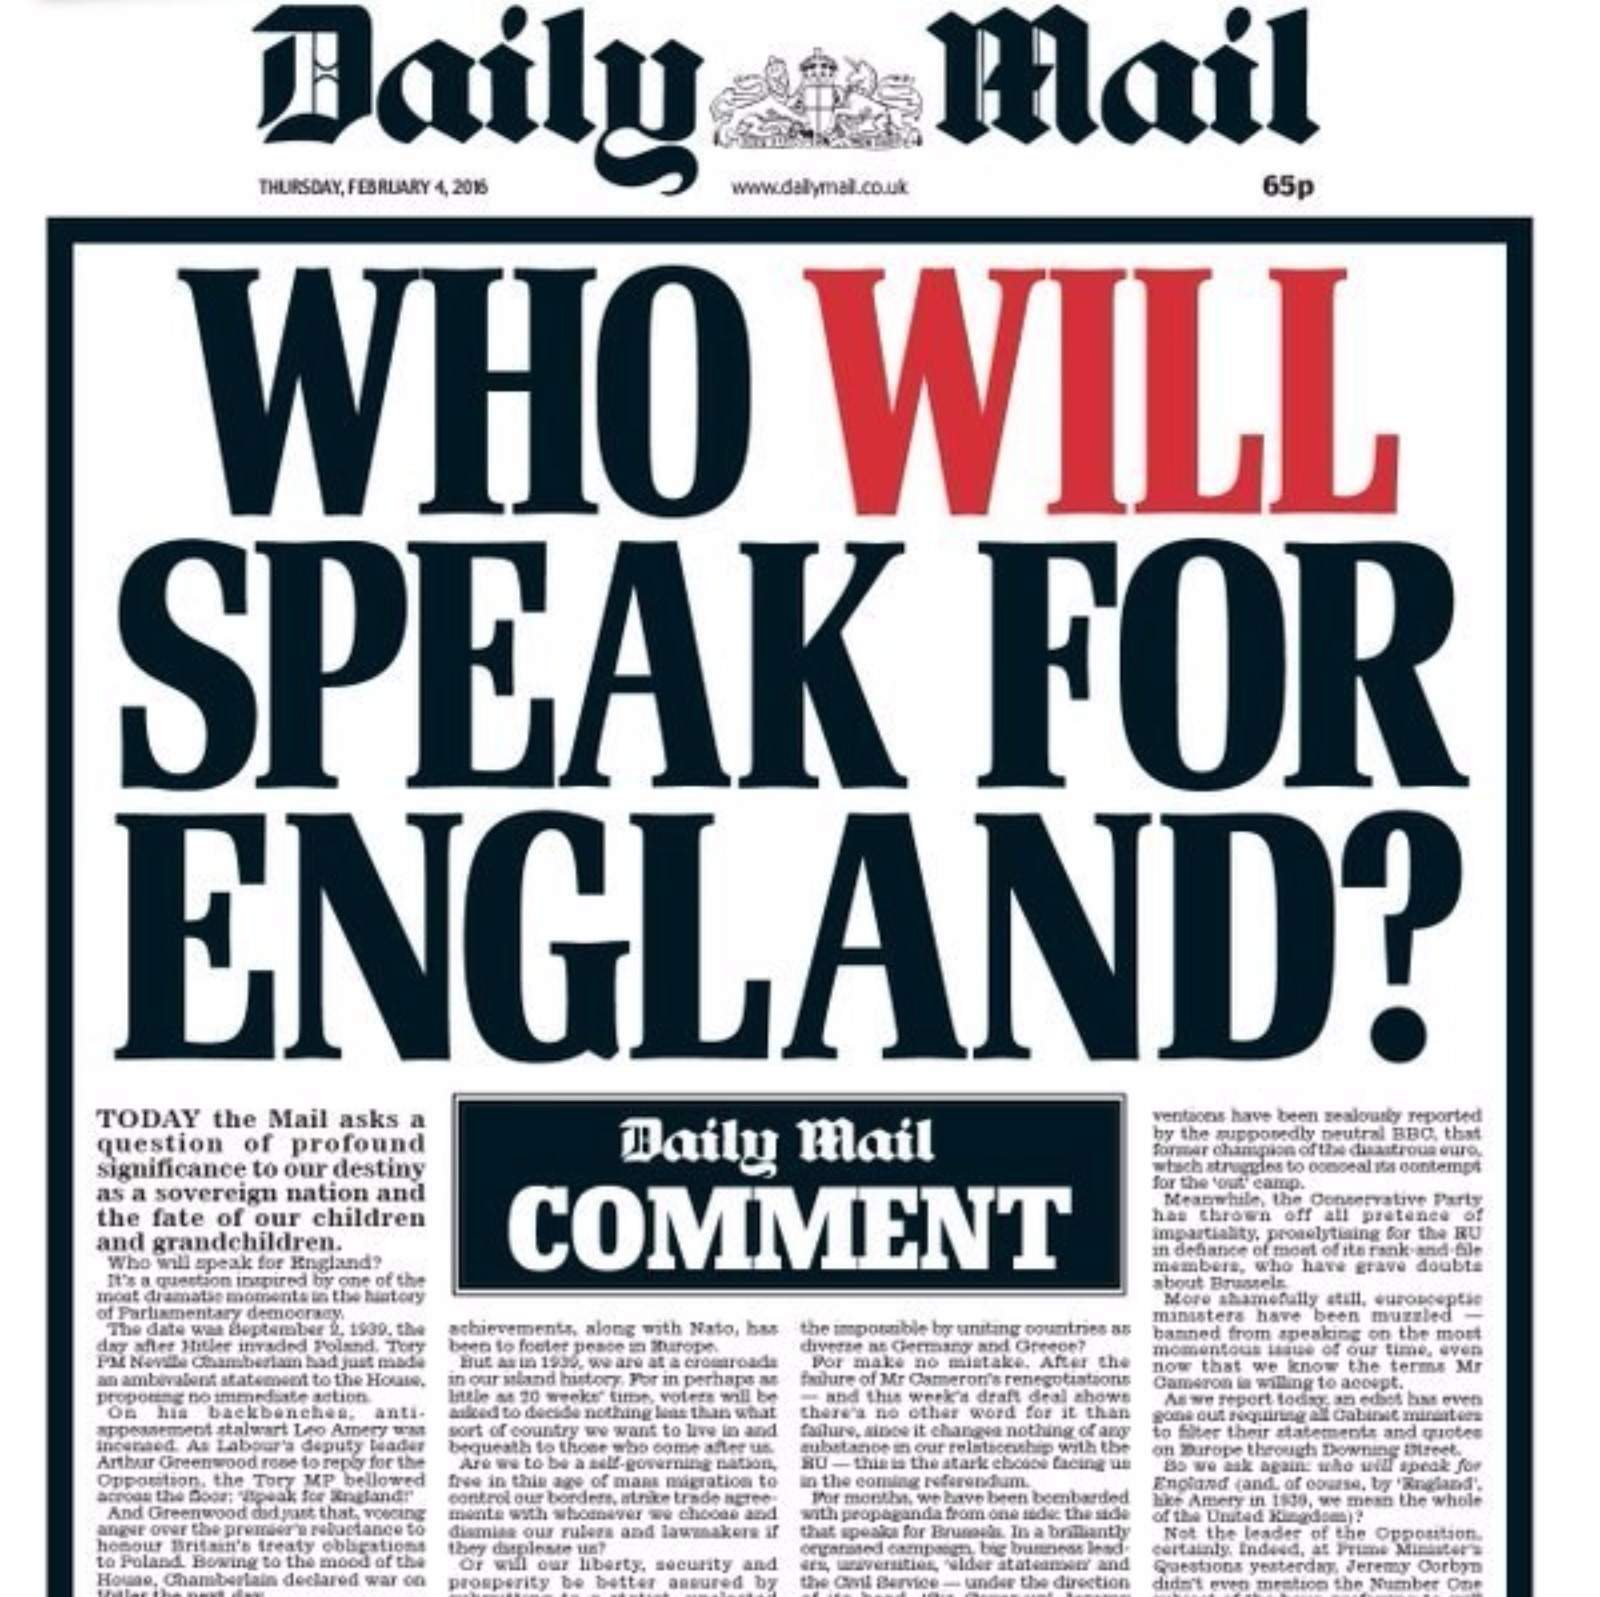 """Who """"speaks for England"""" - and for that matter, what is """"England""""?"""